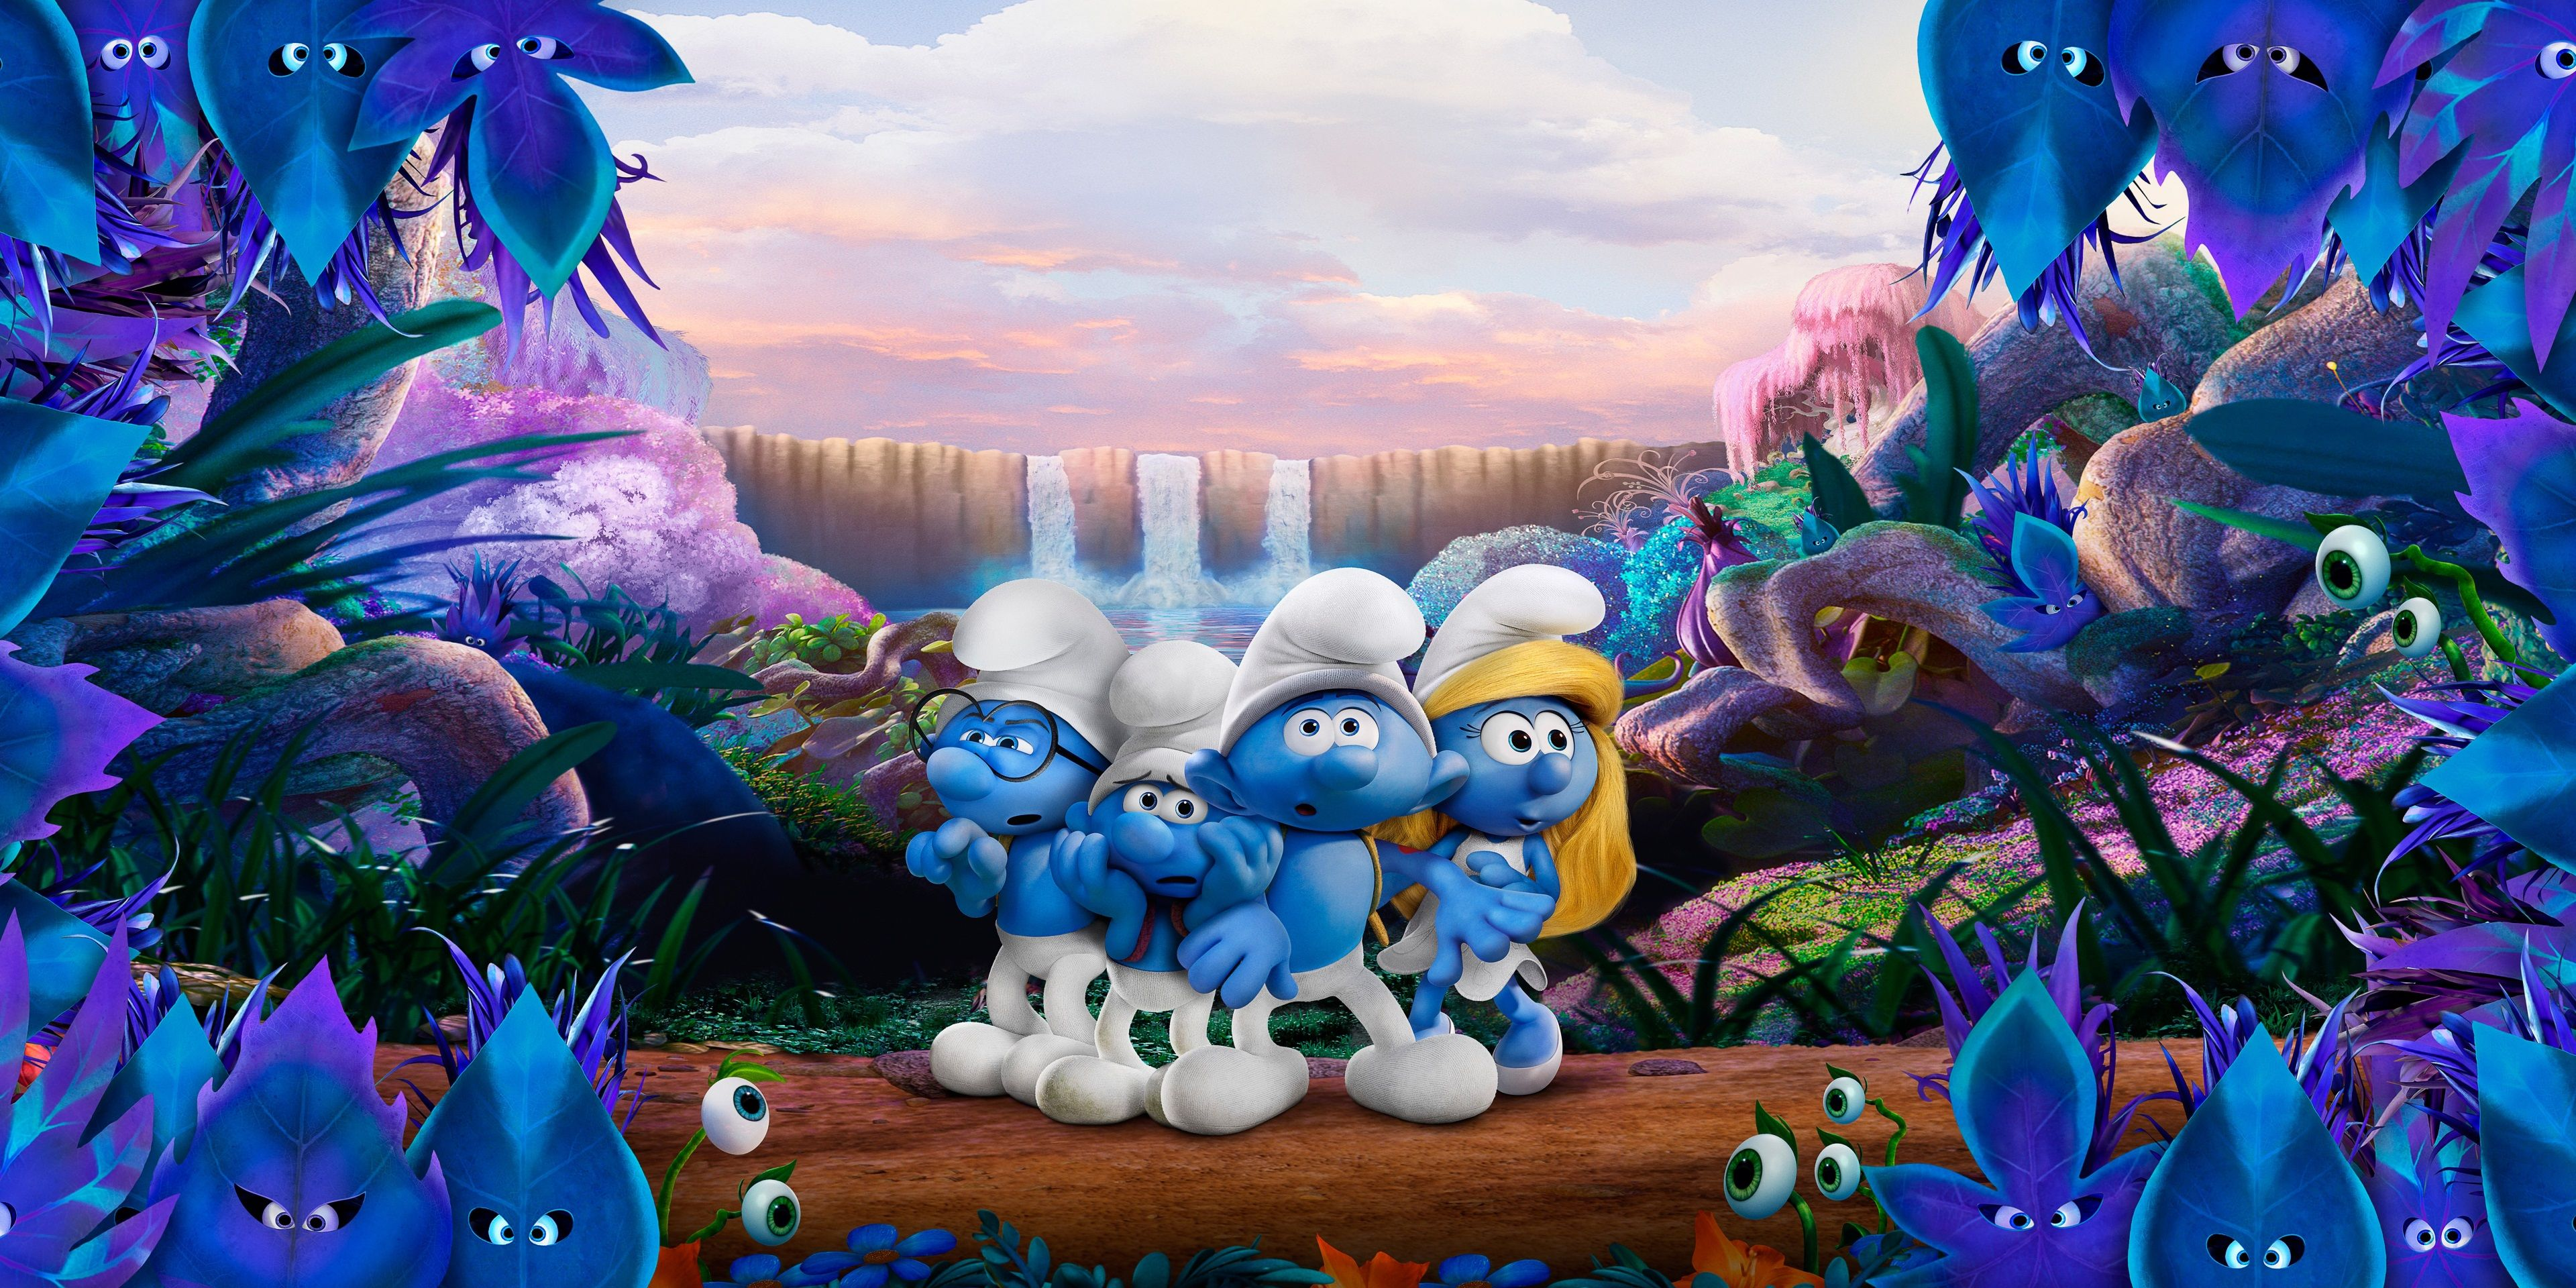 3840x1920 Smurfs The Lost Village 4k Hd High Resolution